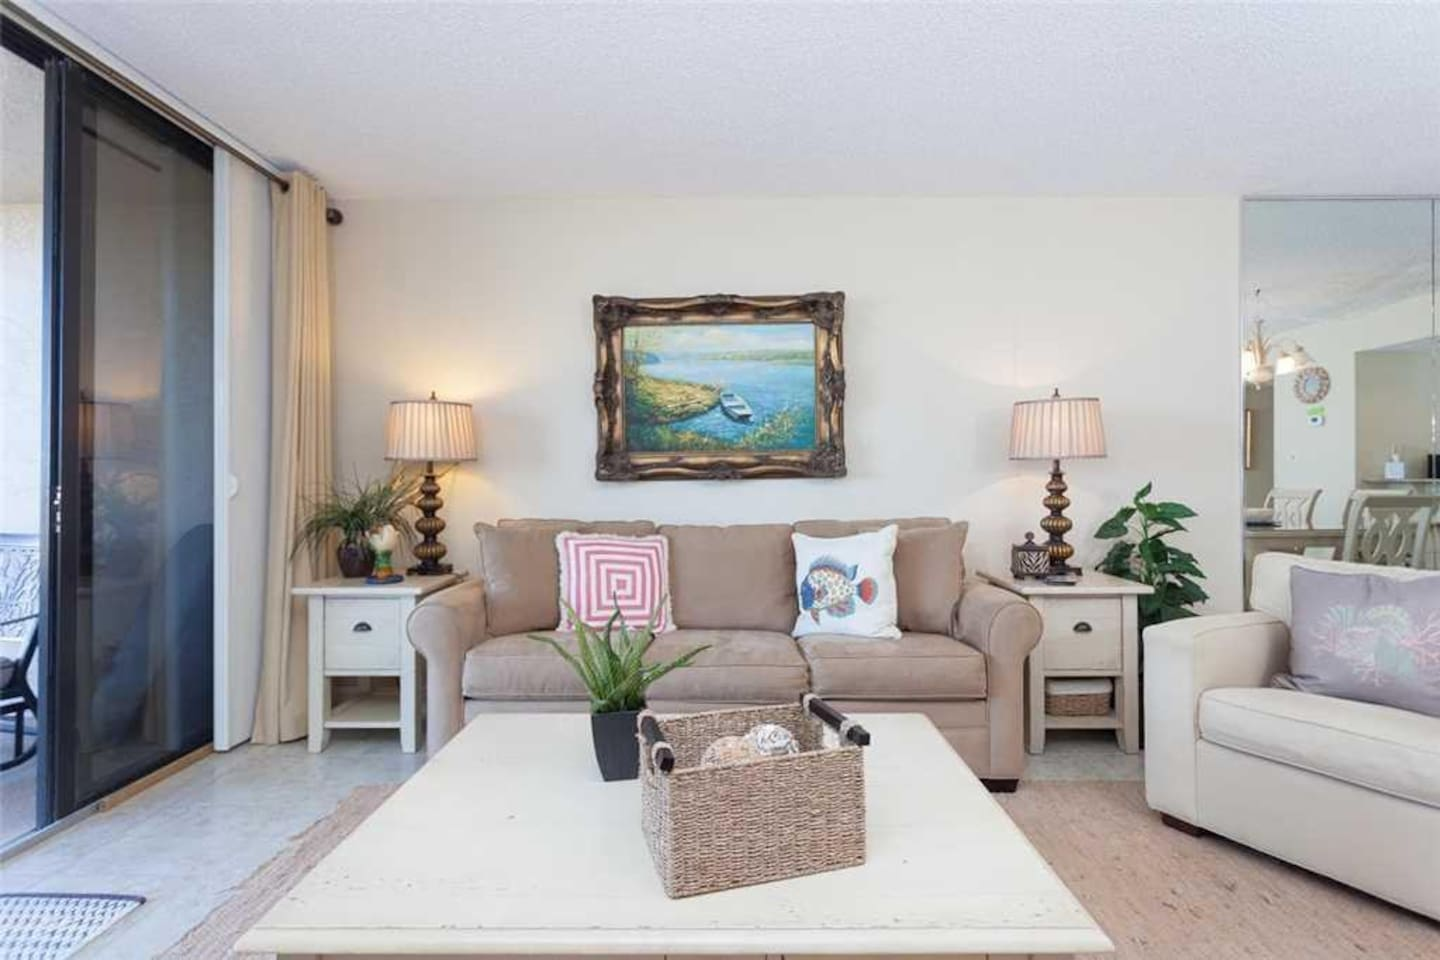 Our open-plan living area is airy and pleasant. - Enjoy the HDTV, comfy recliner, and cushioned couch of our living room. The vie